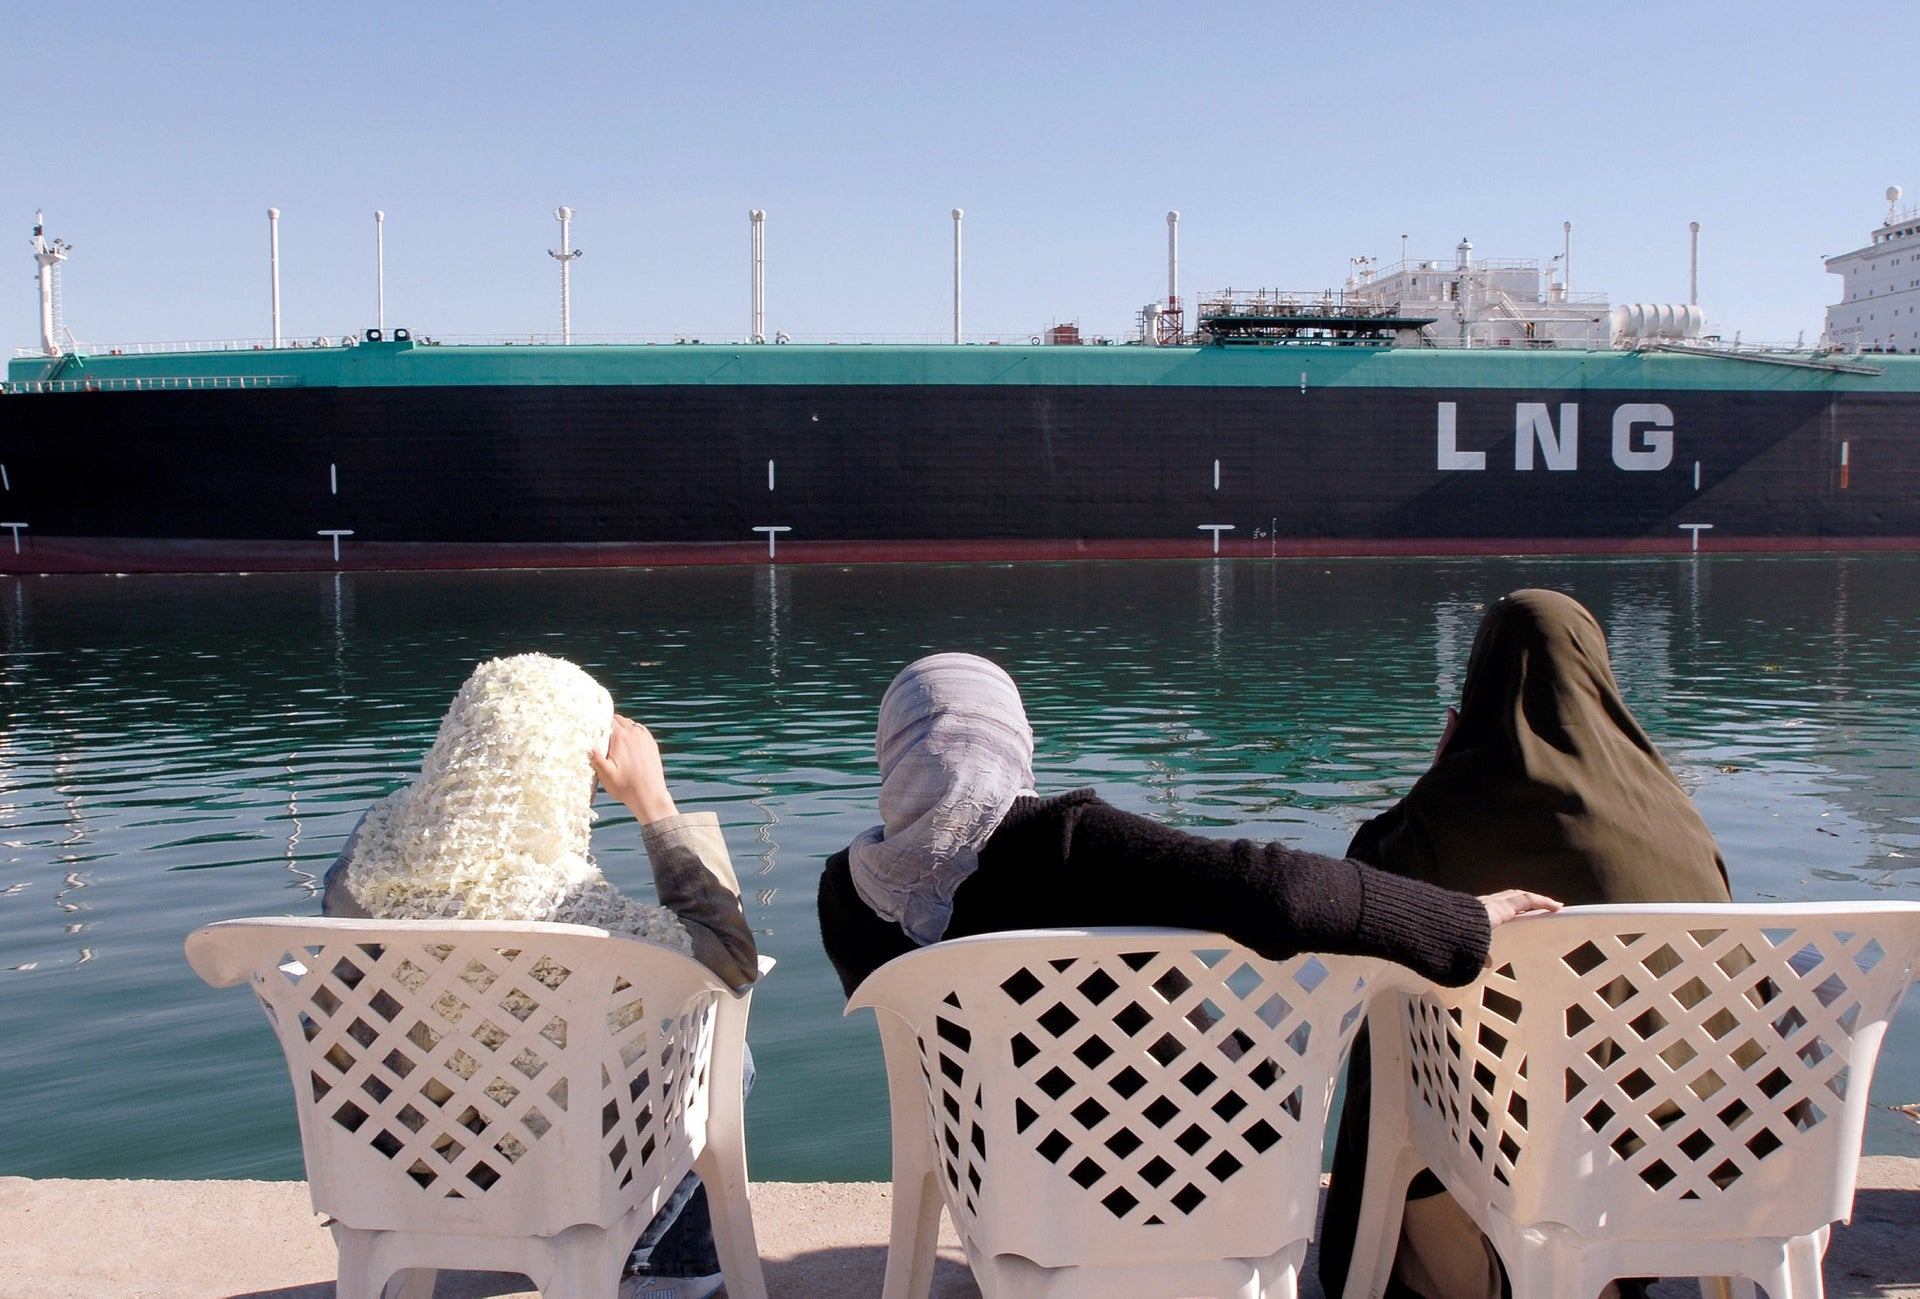 Women observe a gas tanker as it sails northbound on the Suez Canal in Ismailia, Egypt.